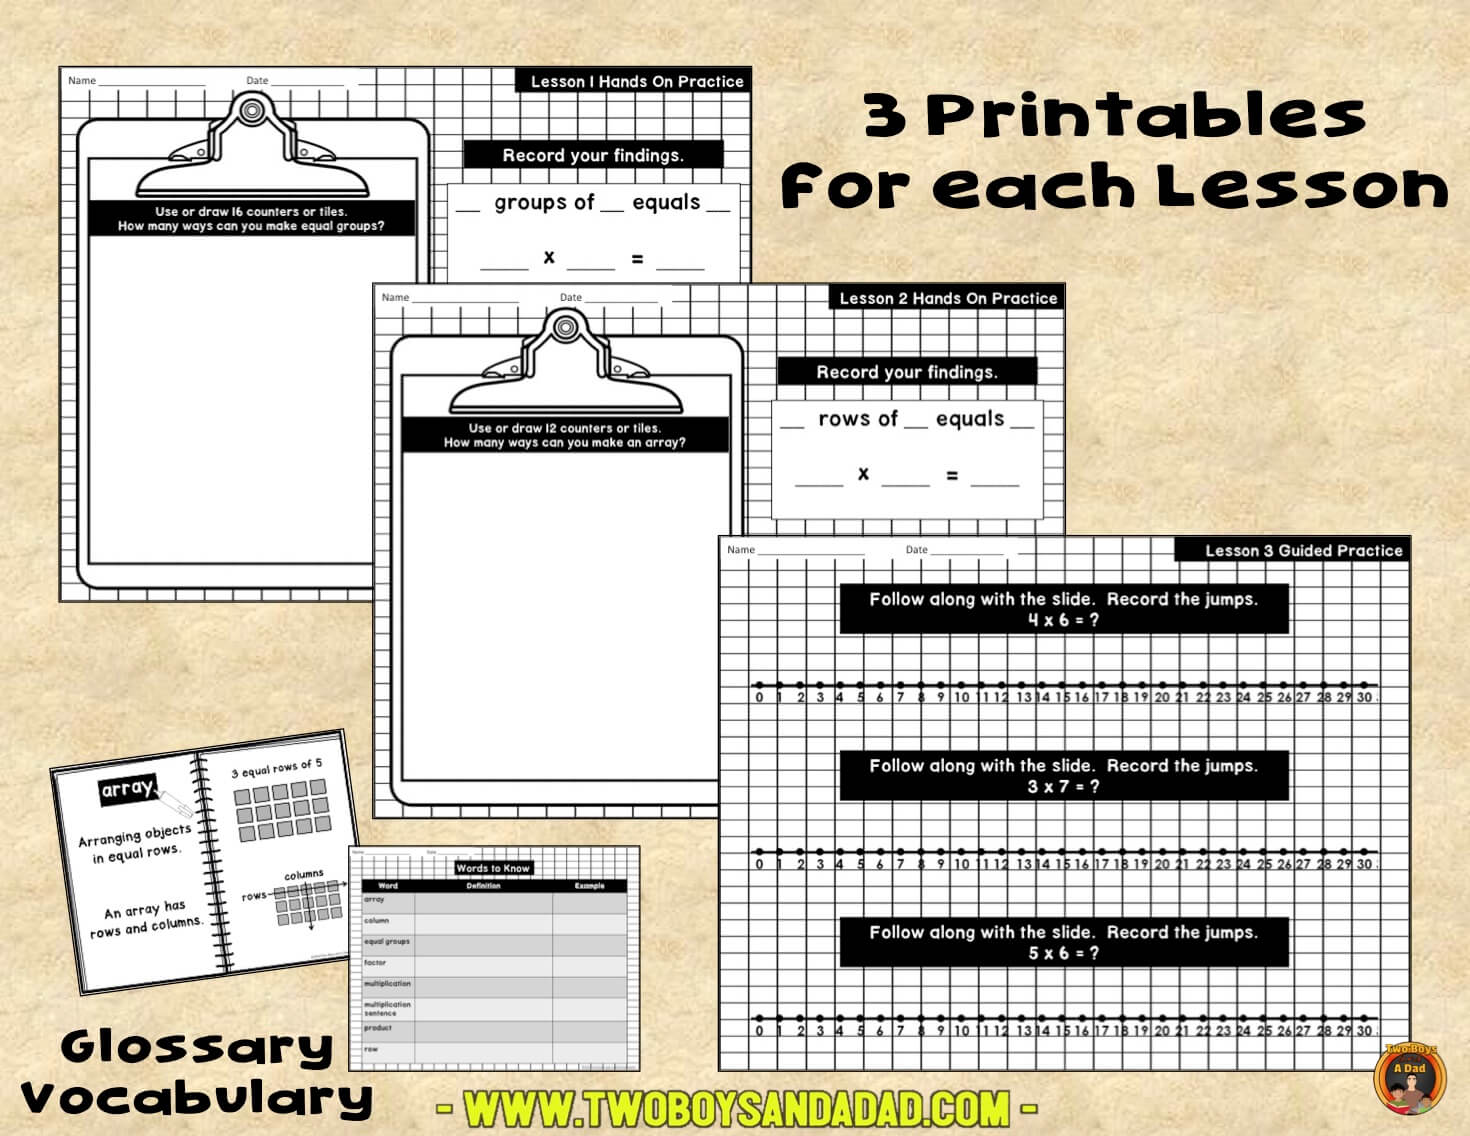 Printables to use with the multiplication PowerPoint